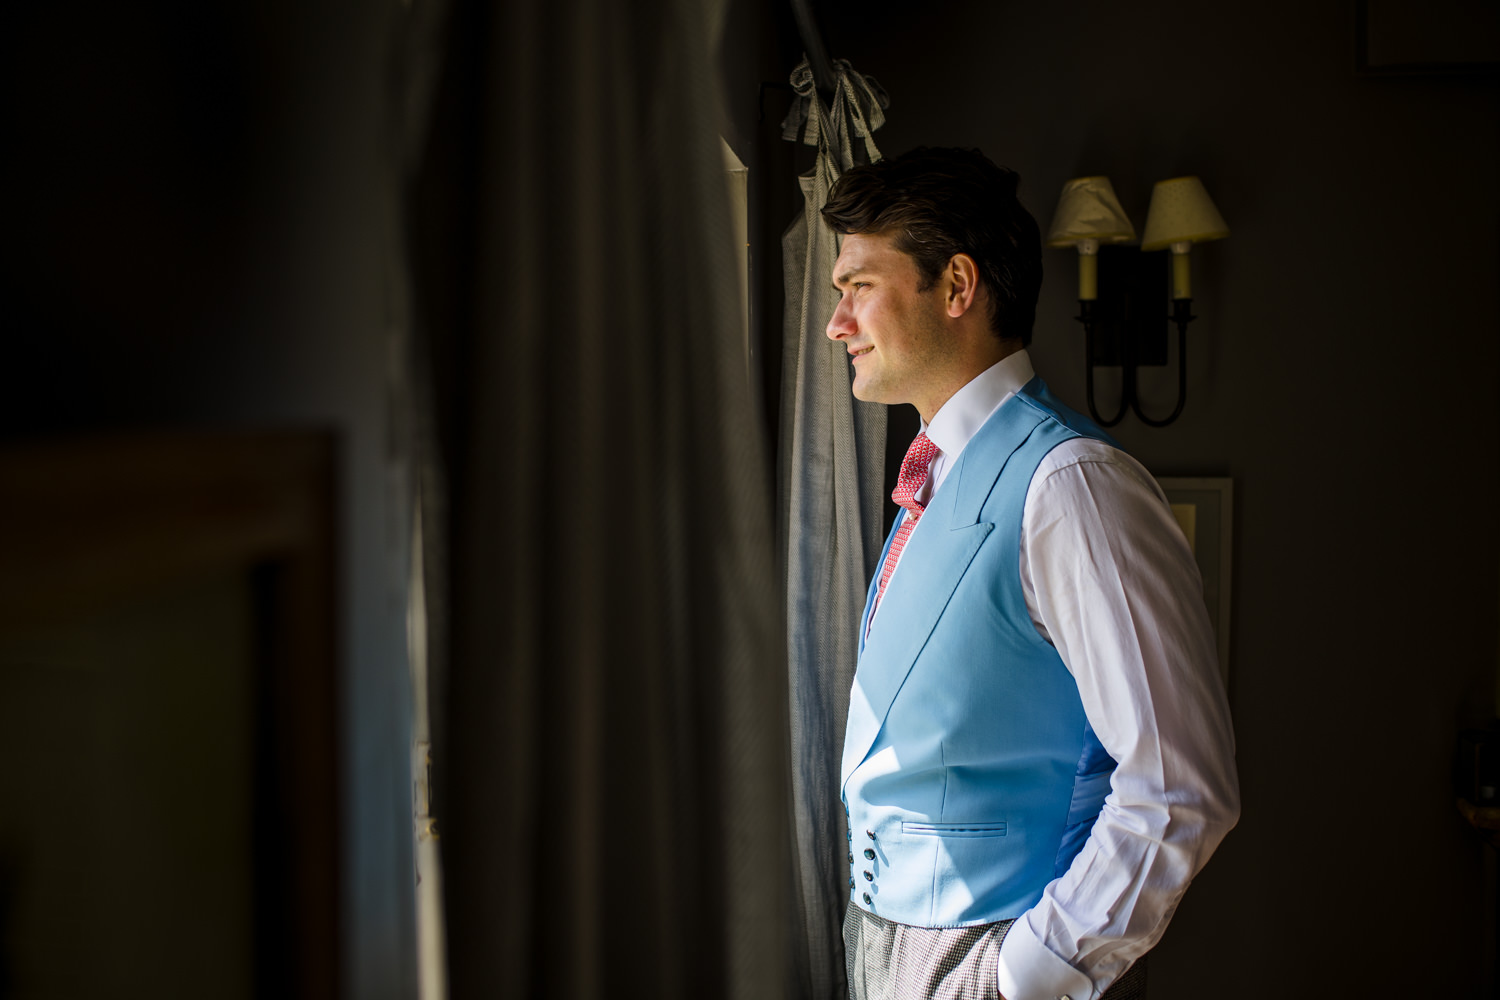 groom in pink and light blue waistcoat looking out window